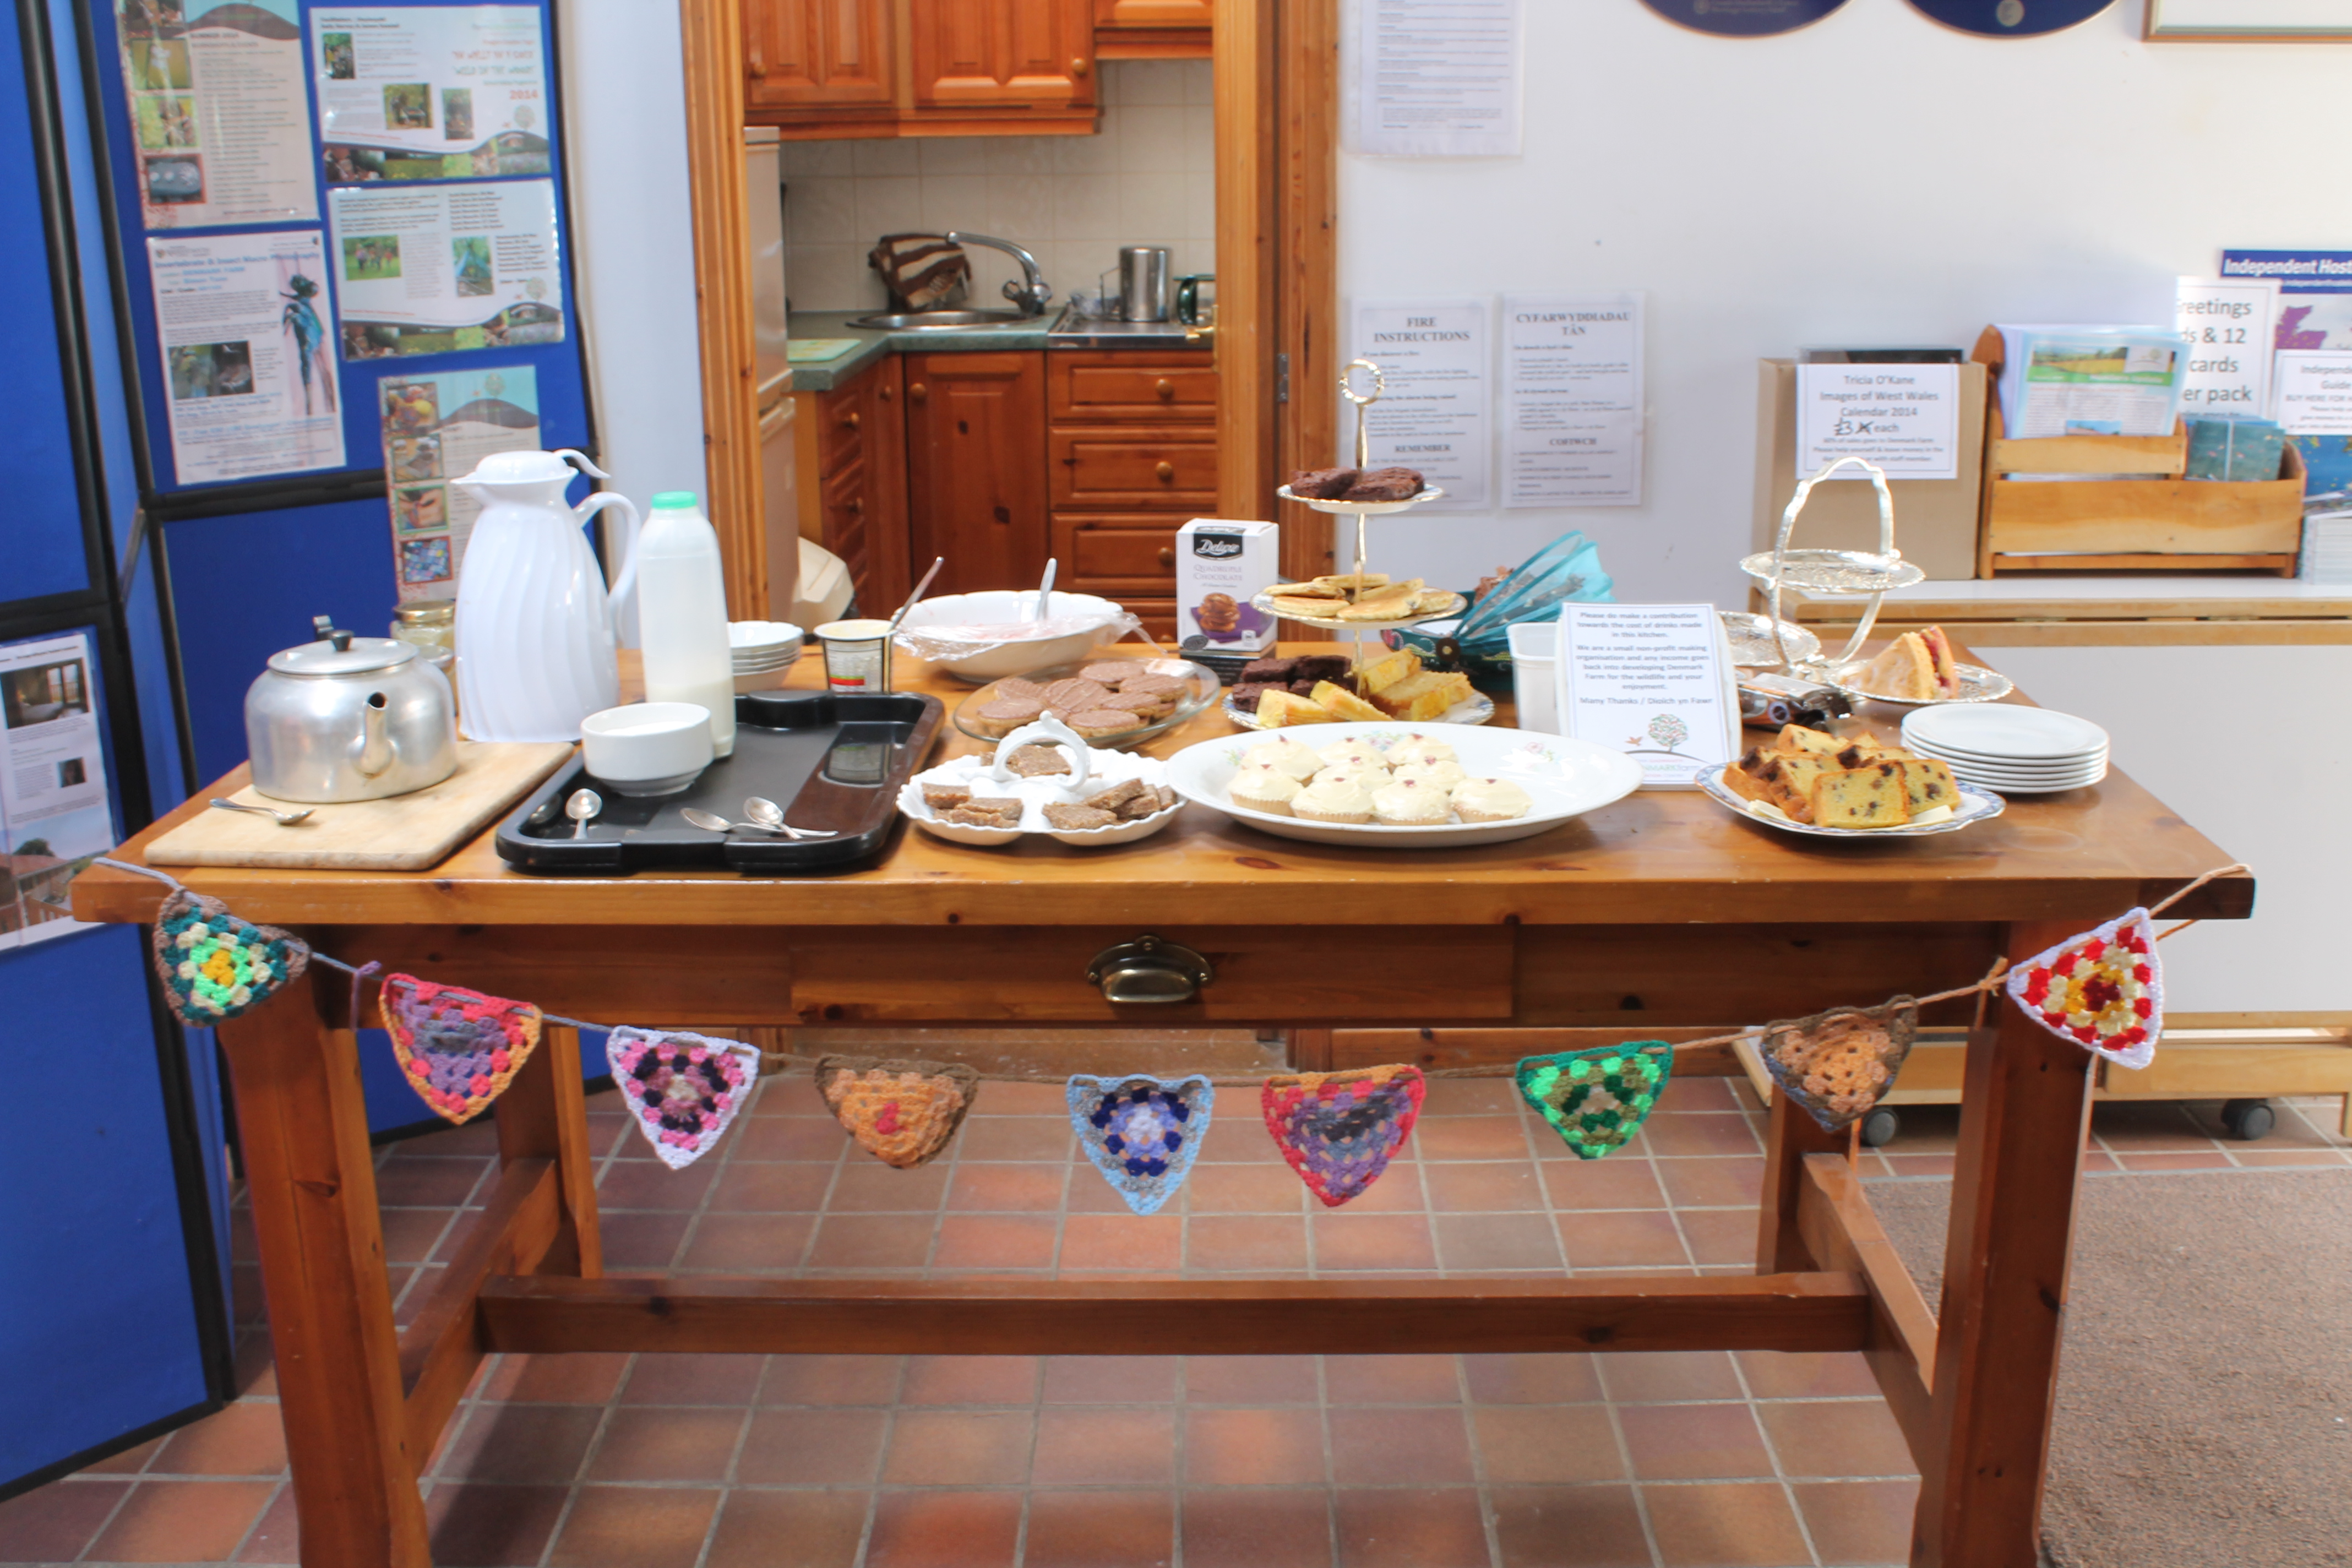 felt compelled to make some bunting to decorate the cake table with